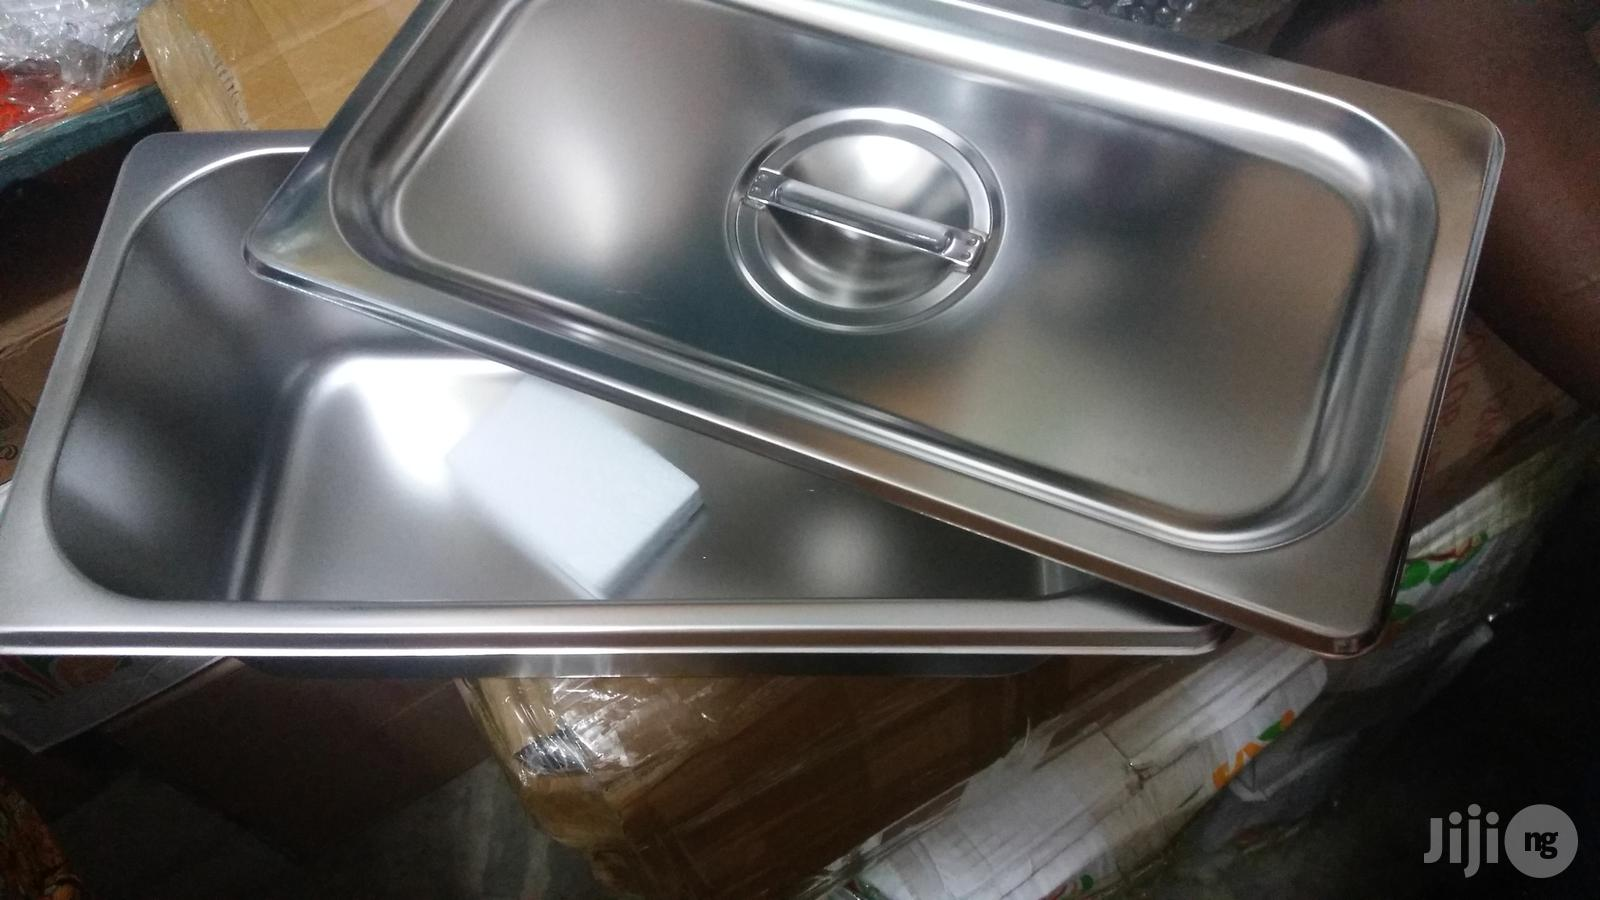 stainless steel chaffing dish pan with cover